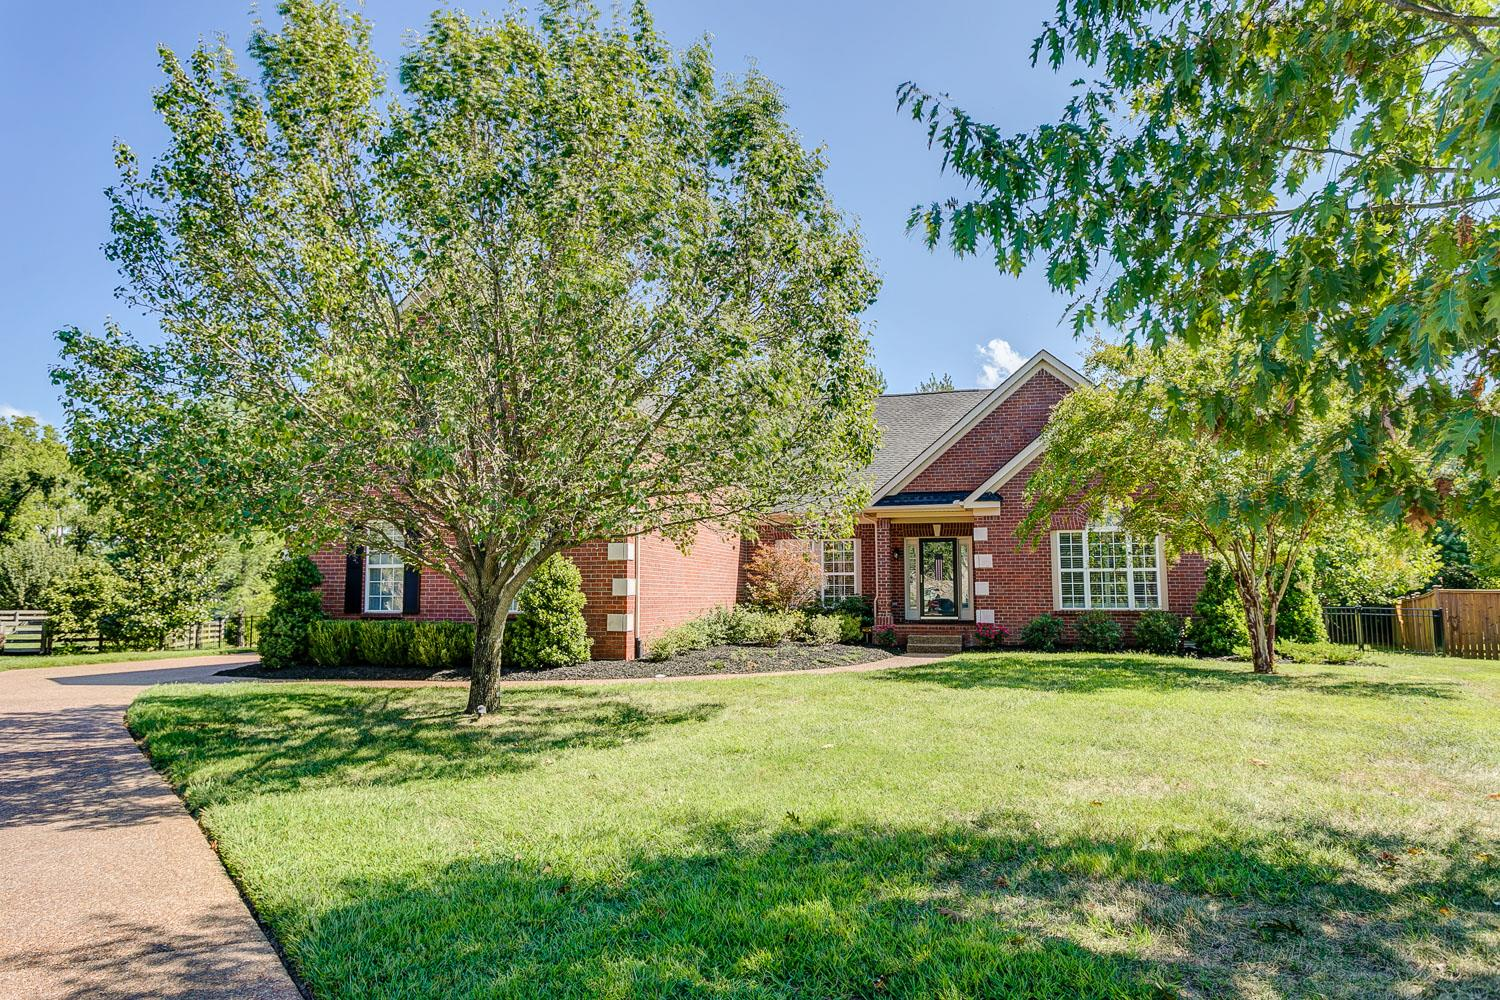 431 COBURN LANE, FRANKLIN, TN 37069